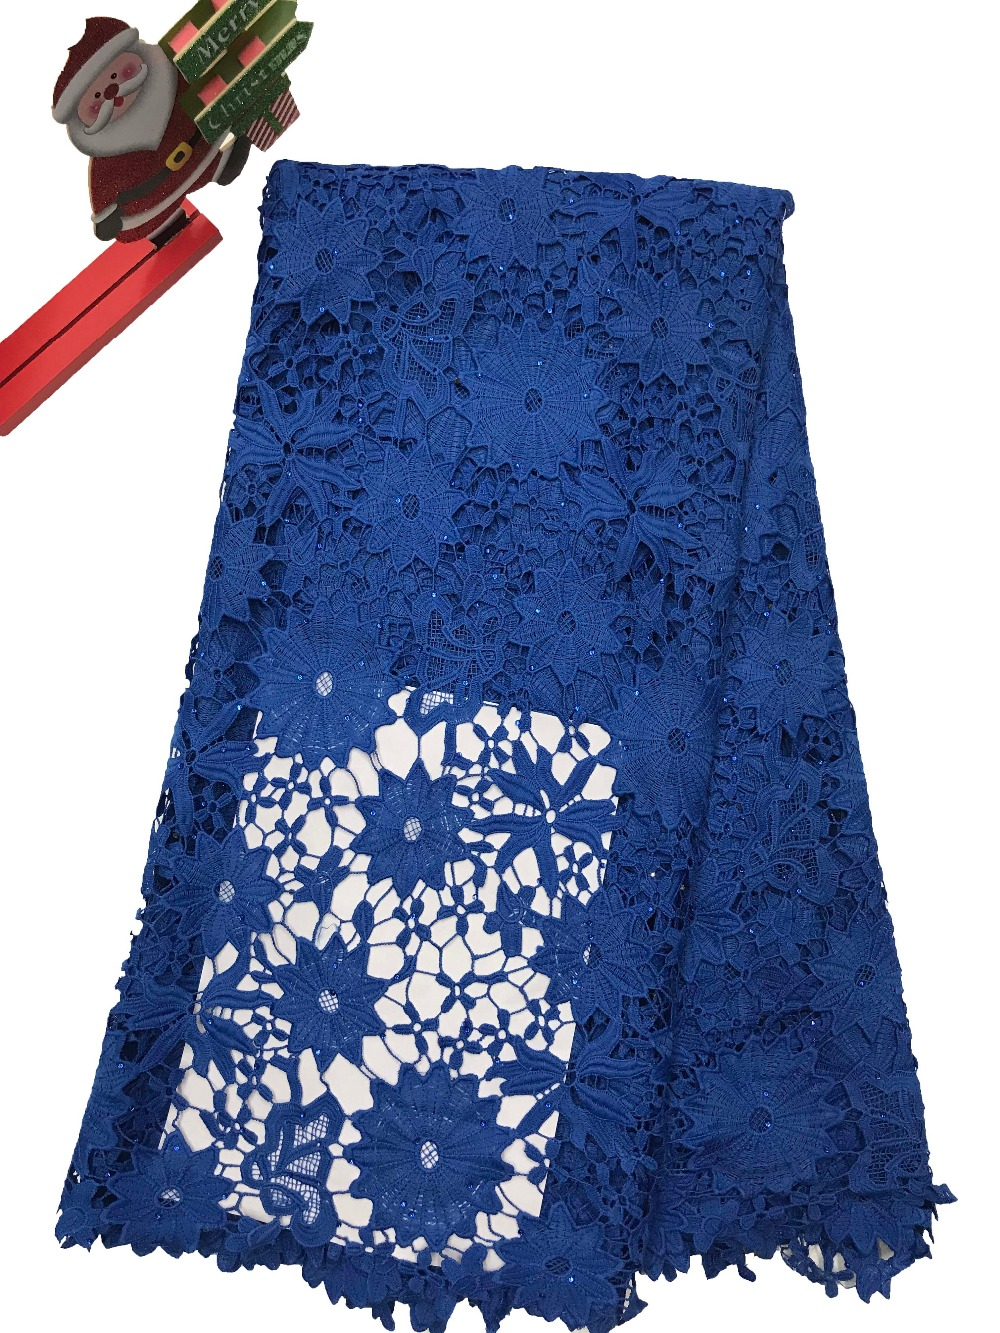 African Cotton Swiss Voile Lace Fabric High Quality Stones Swiss Voile Lace In Switzerland Cotton African Lace Fabric in Lace from Home Garden